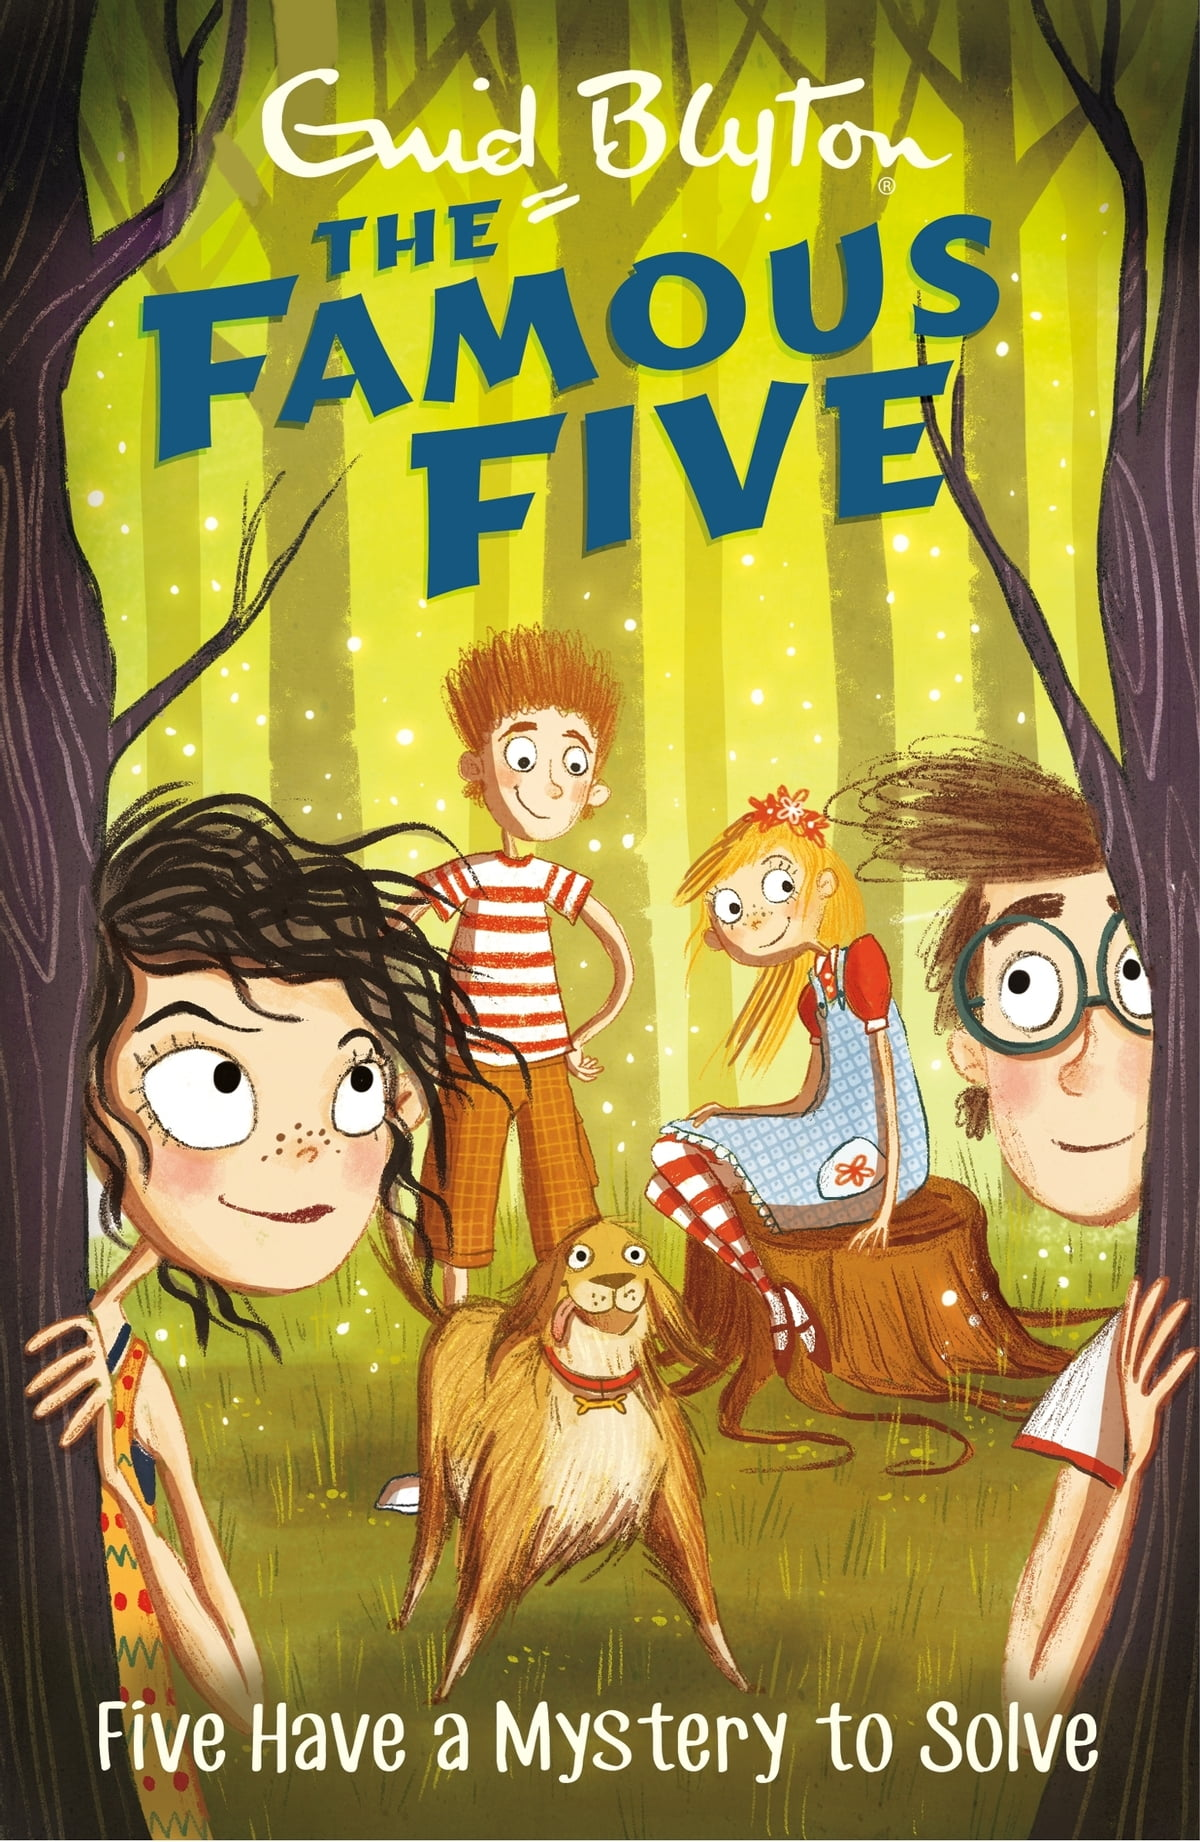 Famous Five 20 Have A Mystery To Solve Ebook By Enid Blyton Of The Vanished Prince 9781444923131 Rakuten Kobo